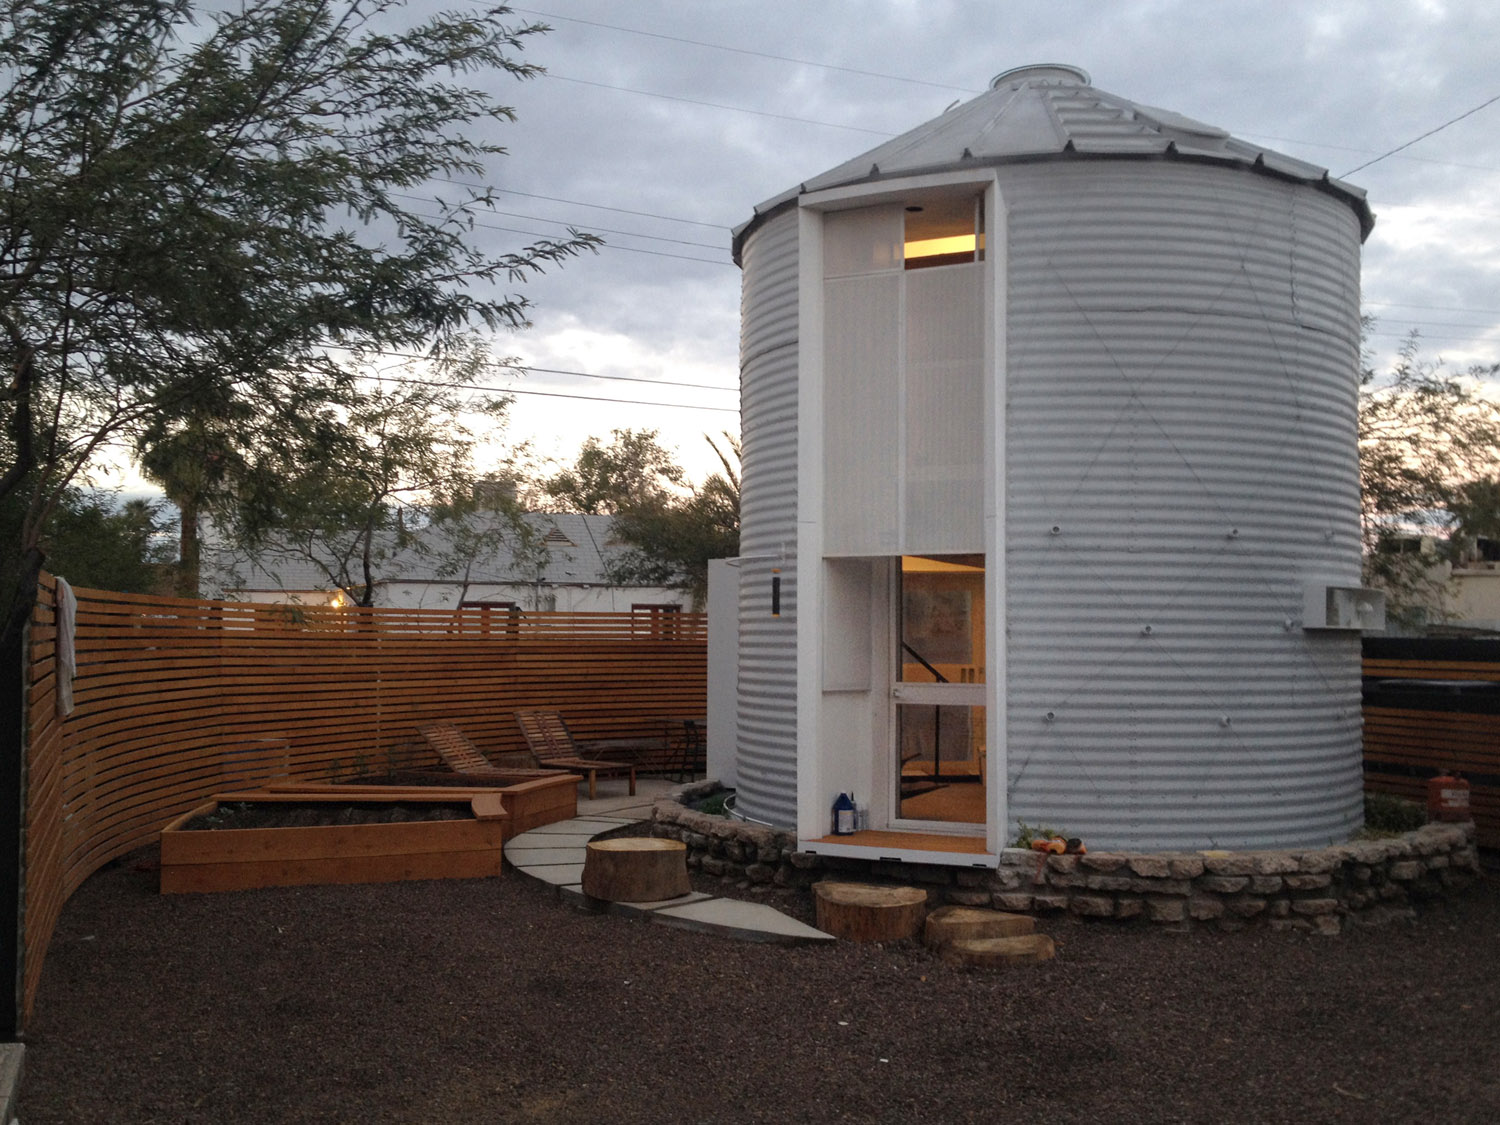 Architect Turns Old Grain Silo Into His Home, And The Interior Is Amazing